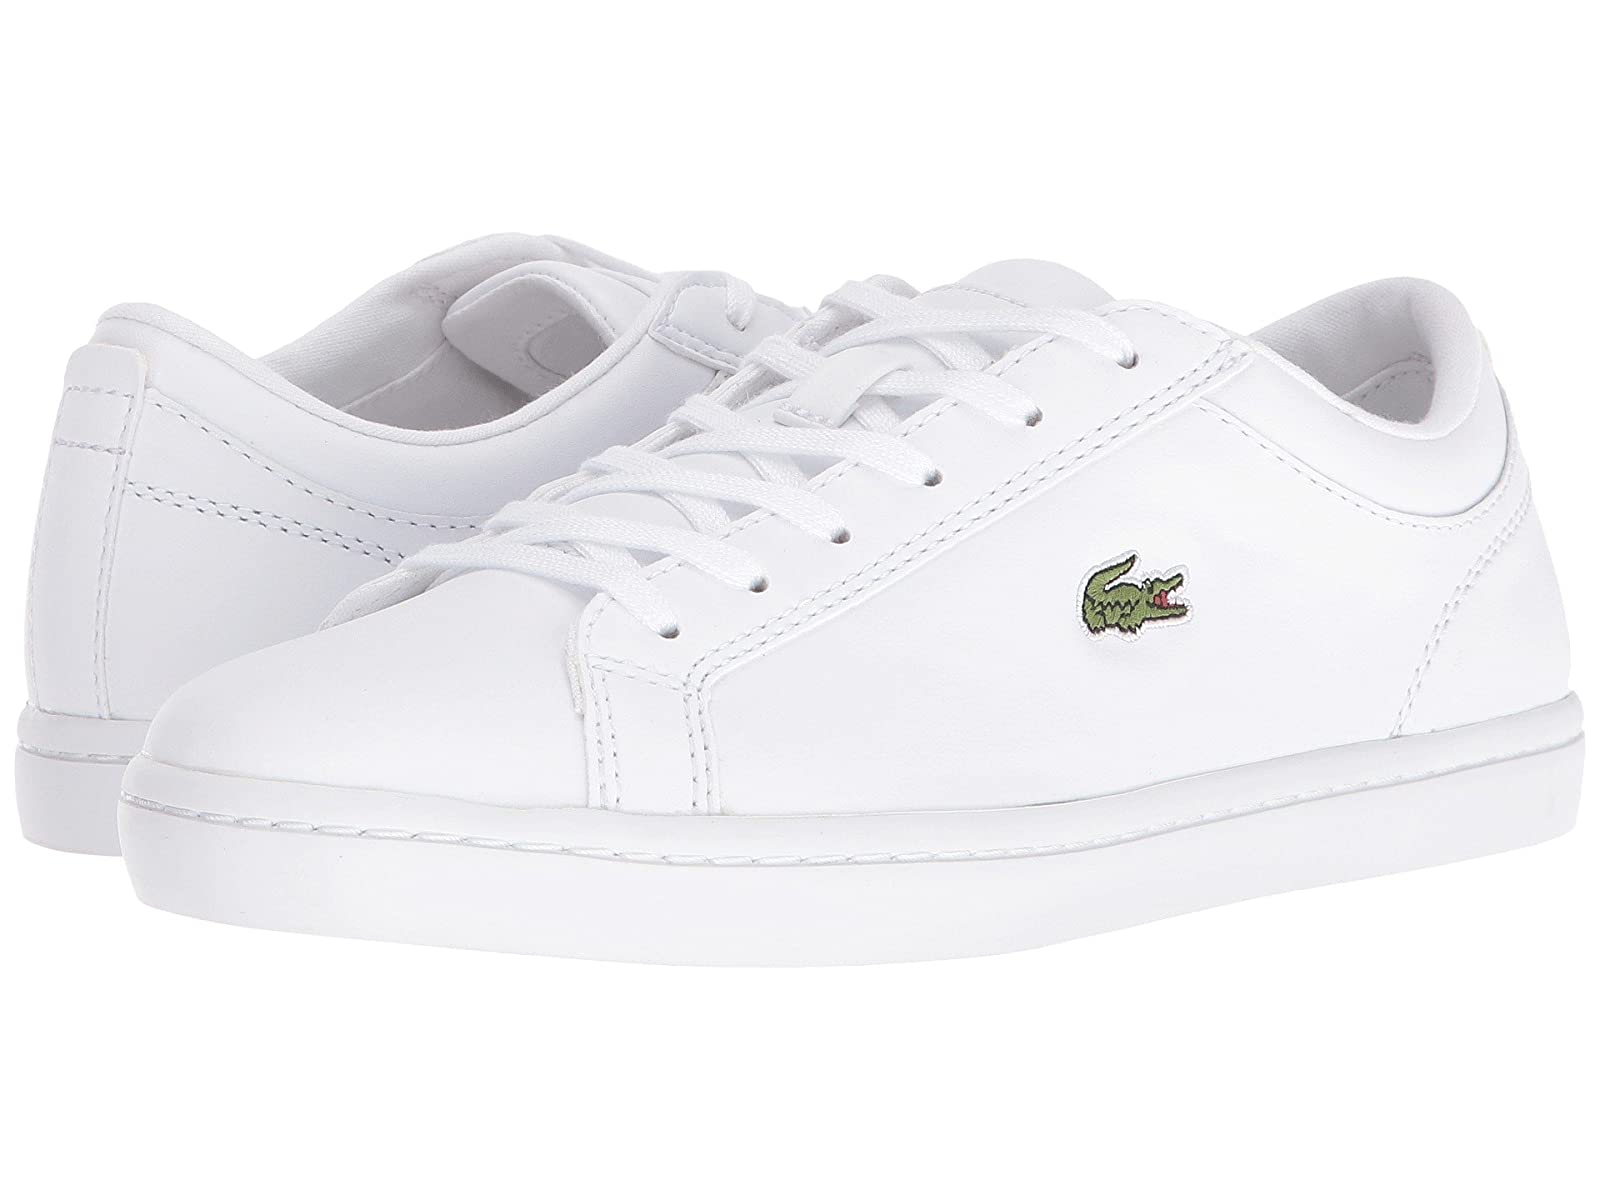 Lacoste Straightset BL 1Atmospheric grades have affordable shoes